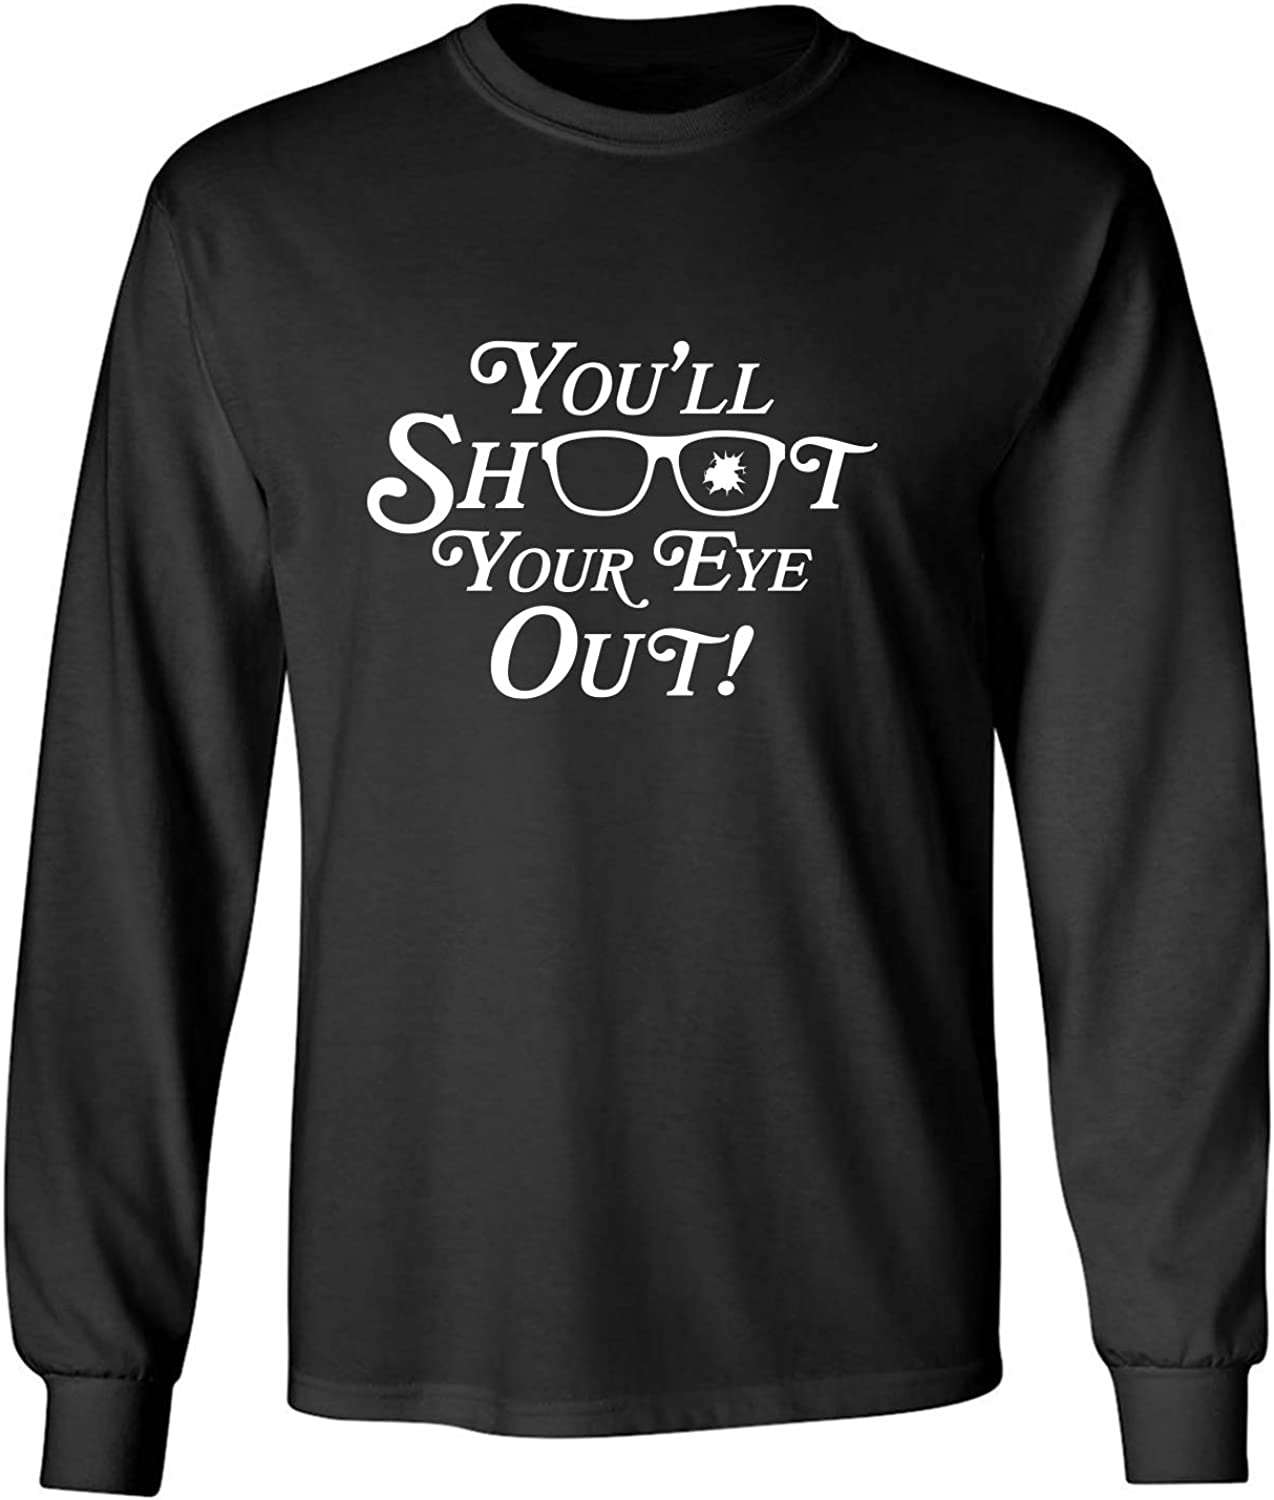 You'll Shoot Your Eye Out Adult Long Sleeve T-Shirt in Black - XXXXX-Large